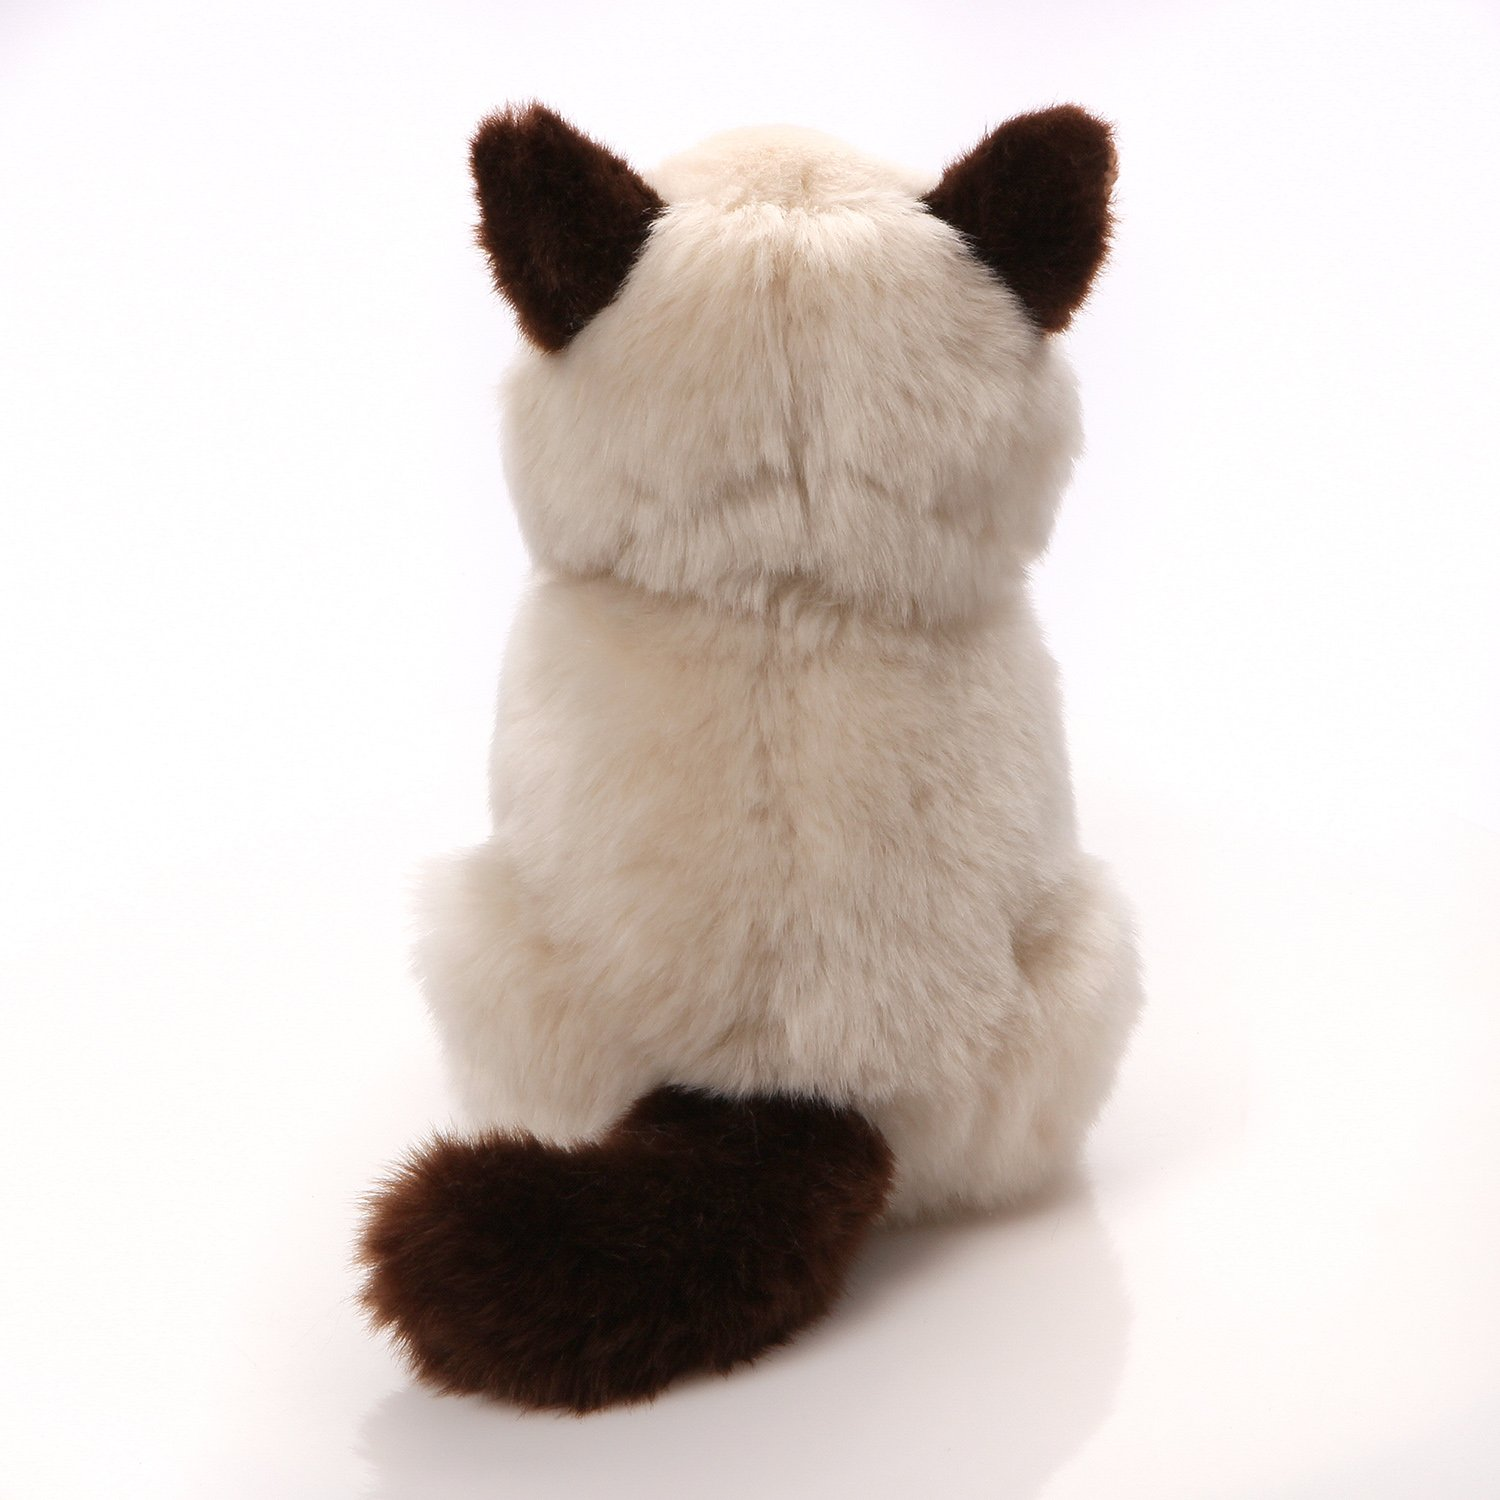 Plush Stuffed Animal Toys : Gund grumpy cat plush stuffed animal toy new free shipping